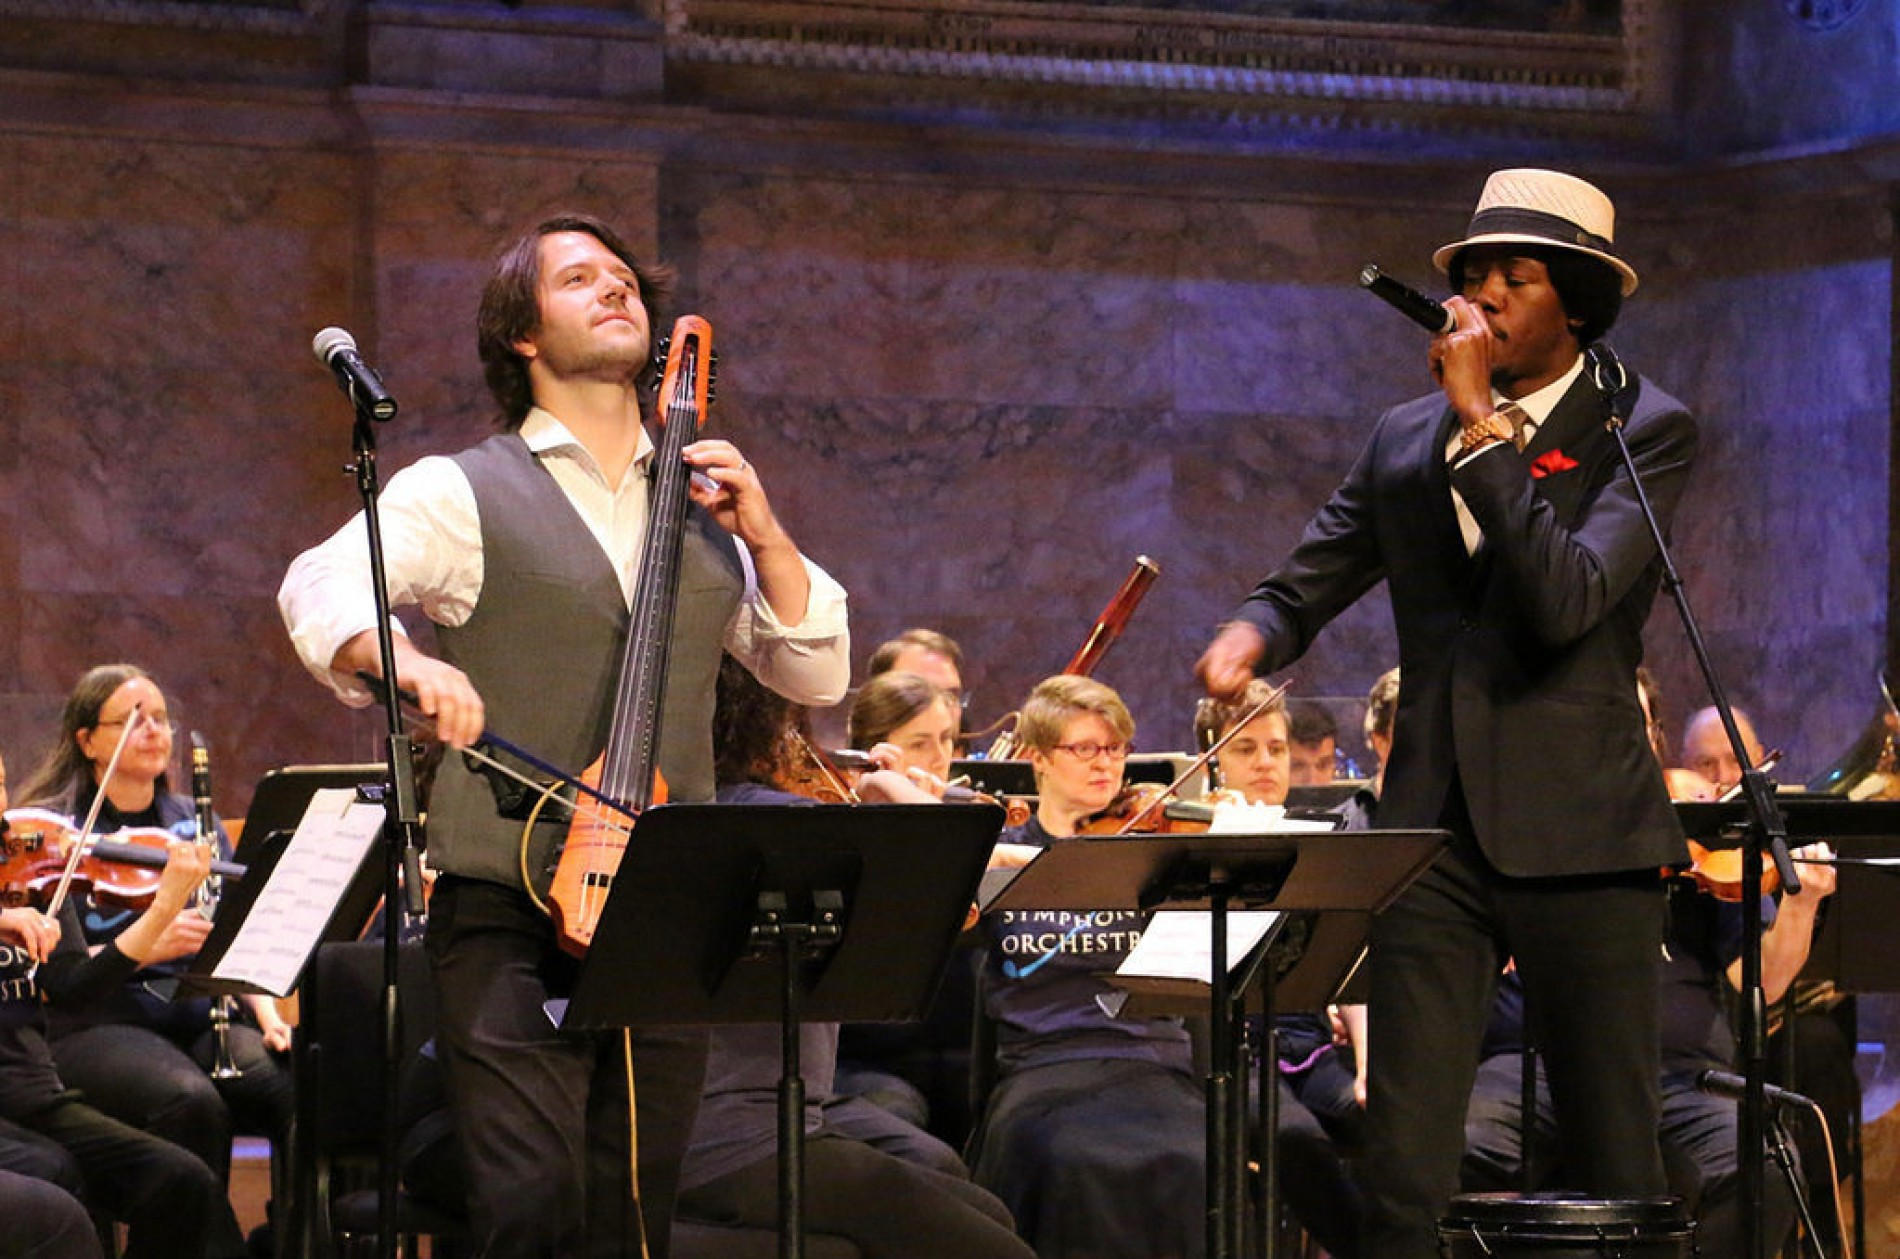 An electric cellist and beat boxer play onstage with orchestra members in blue t-shirts